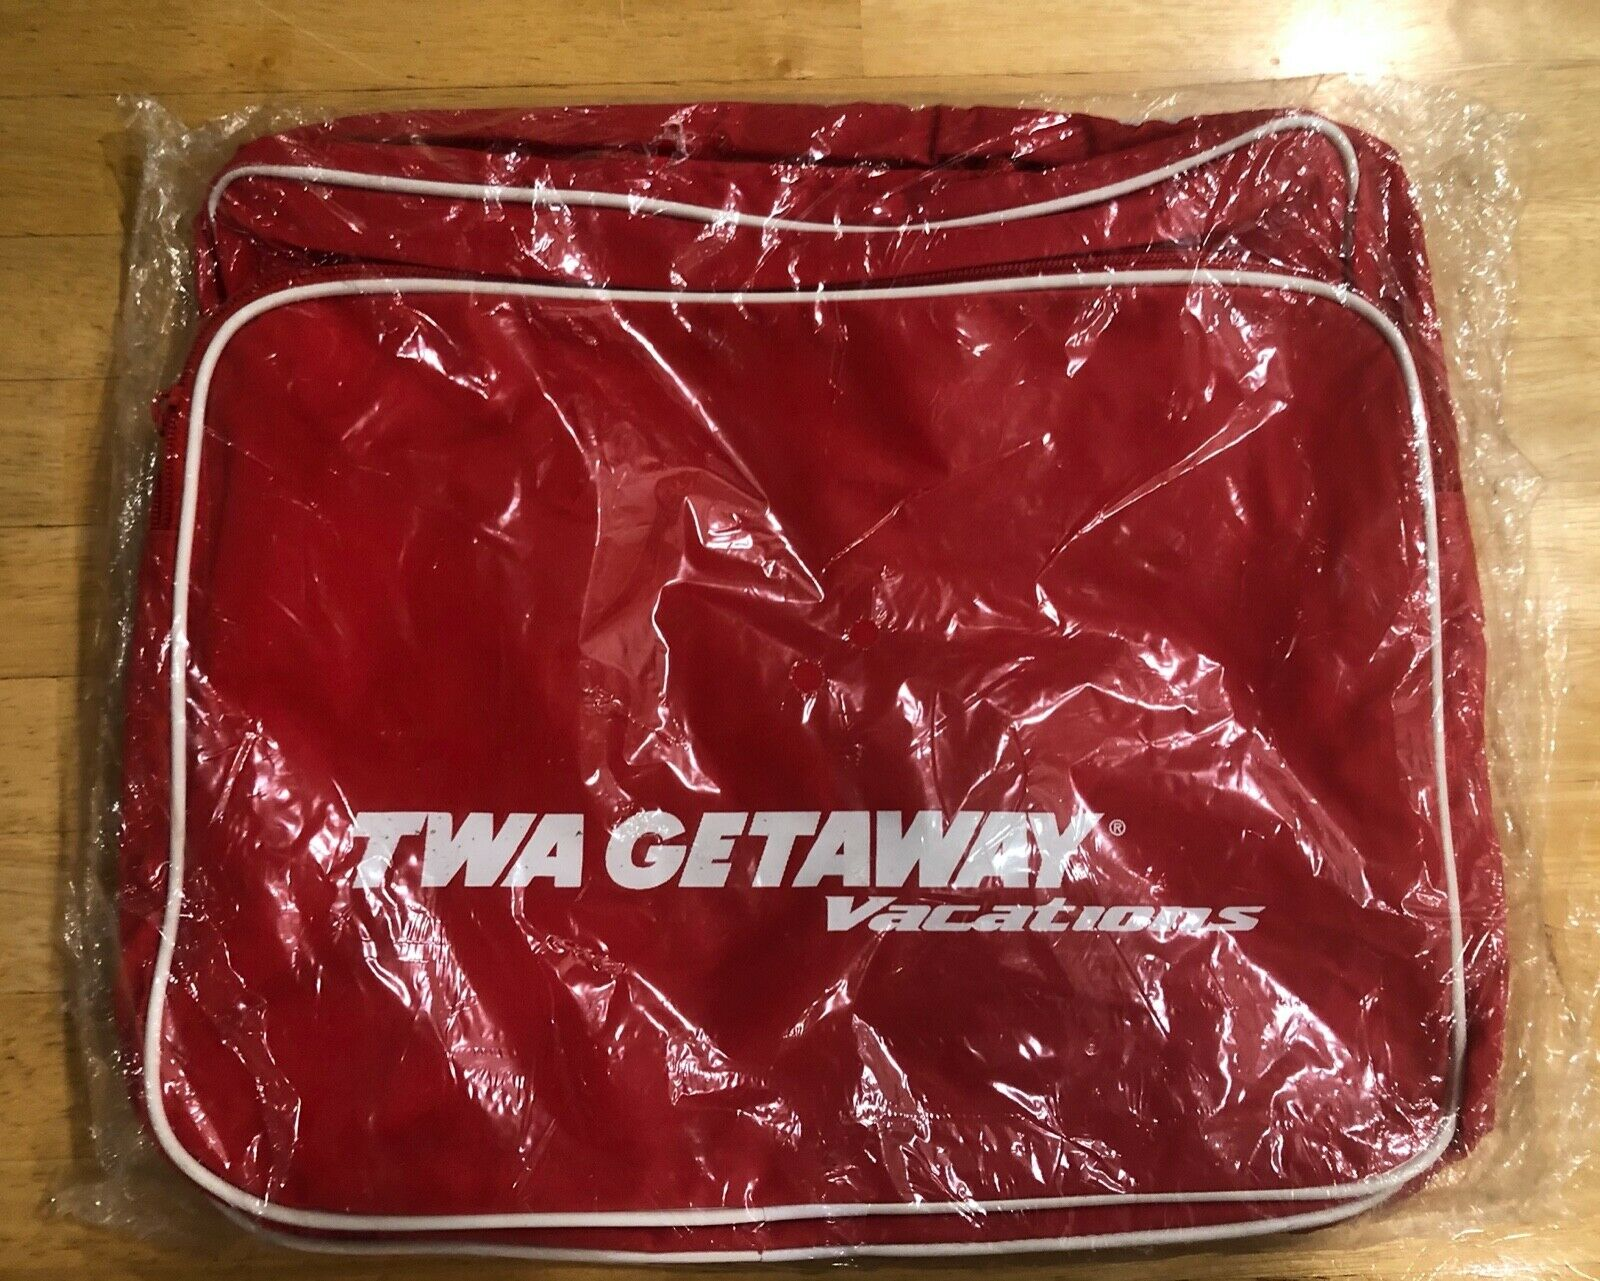 Vintage TWA Getaway Vacations Red Carry On Travel Bag With Shoulder Strap  - $50.00